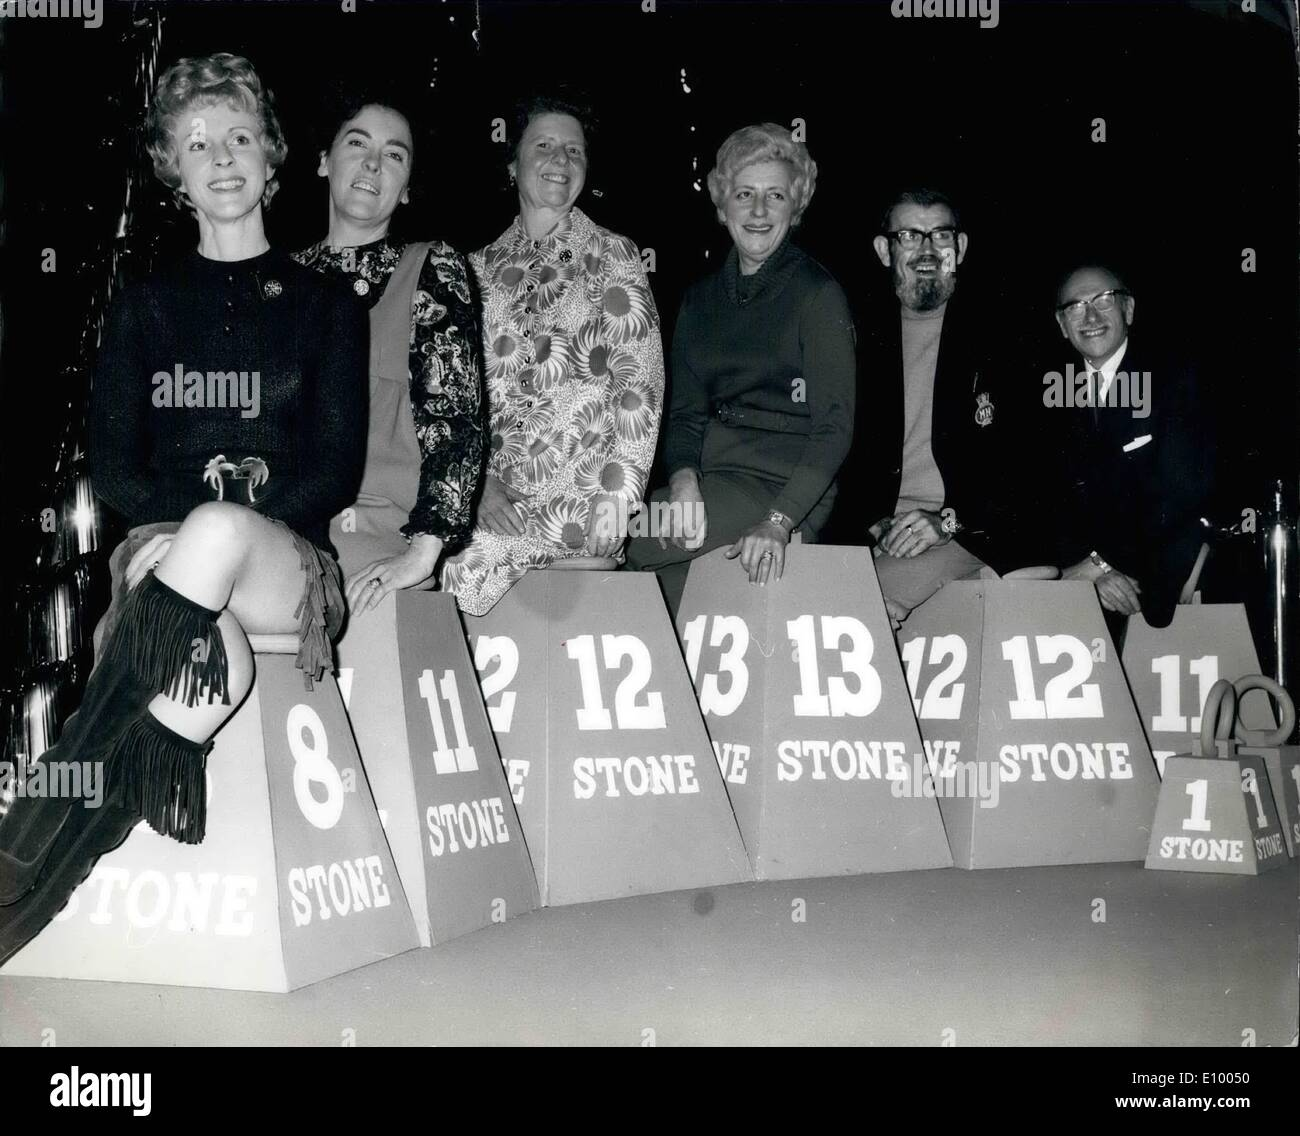 Jan. 01, 1972 - Happy weight-watchers: Six patients who appeared at the Albert Hall meeting to mark Weight-Watchers' fifth birtday, weighed 132 st. 11 lbs the start of their course and 63 st. 13 lbs at the end. they thus lost more than half their weight. Photo shows the six weight-watchers' sitting on ''Weights that show the number of stones each has shed. They are L-R: Mrs. Joyce Ashmore, Mrs Barbara O'Reilly, Mrs Betty Lary, Mrs Esta Napp, Mr George Eaton, and Mr. Charles Grilles - Stock Image